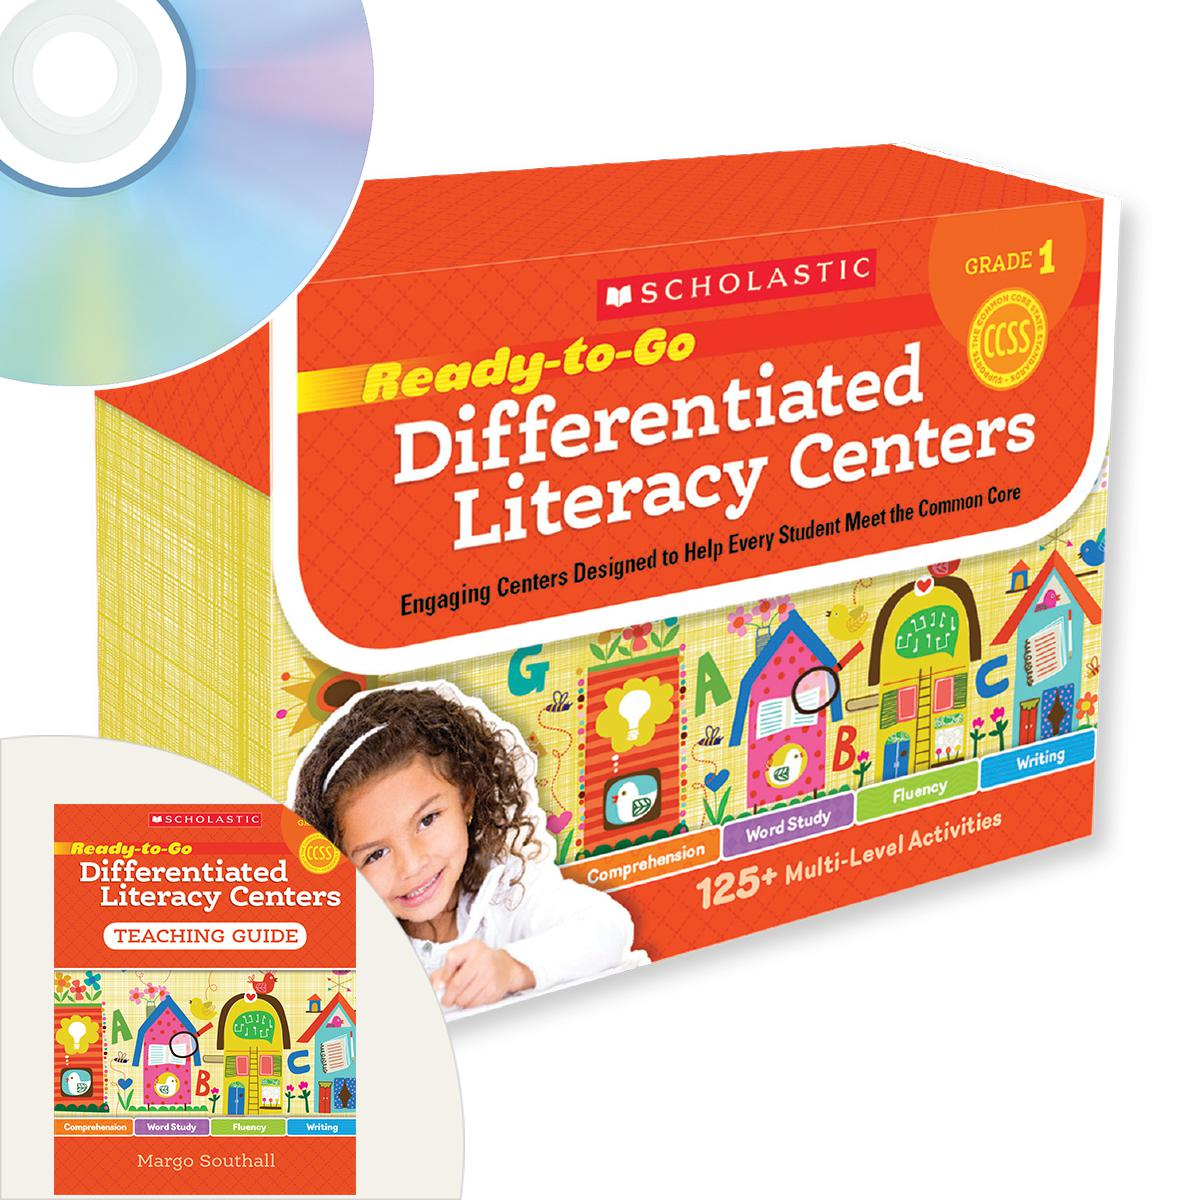 Ready-to-Go Differentiated Learning Centers Grade 1